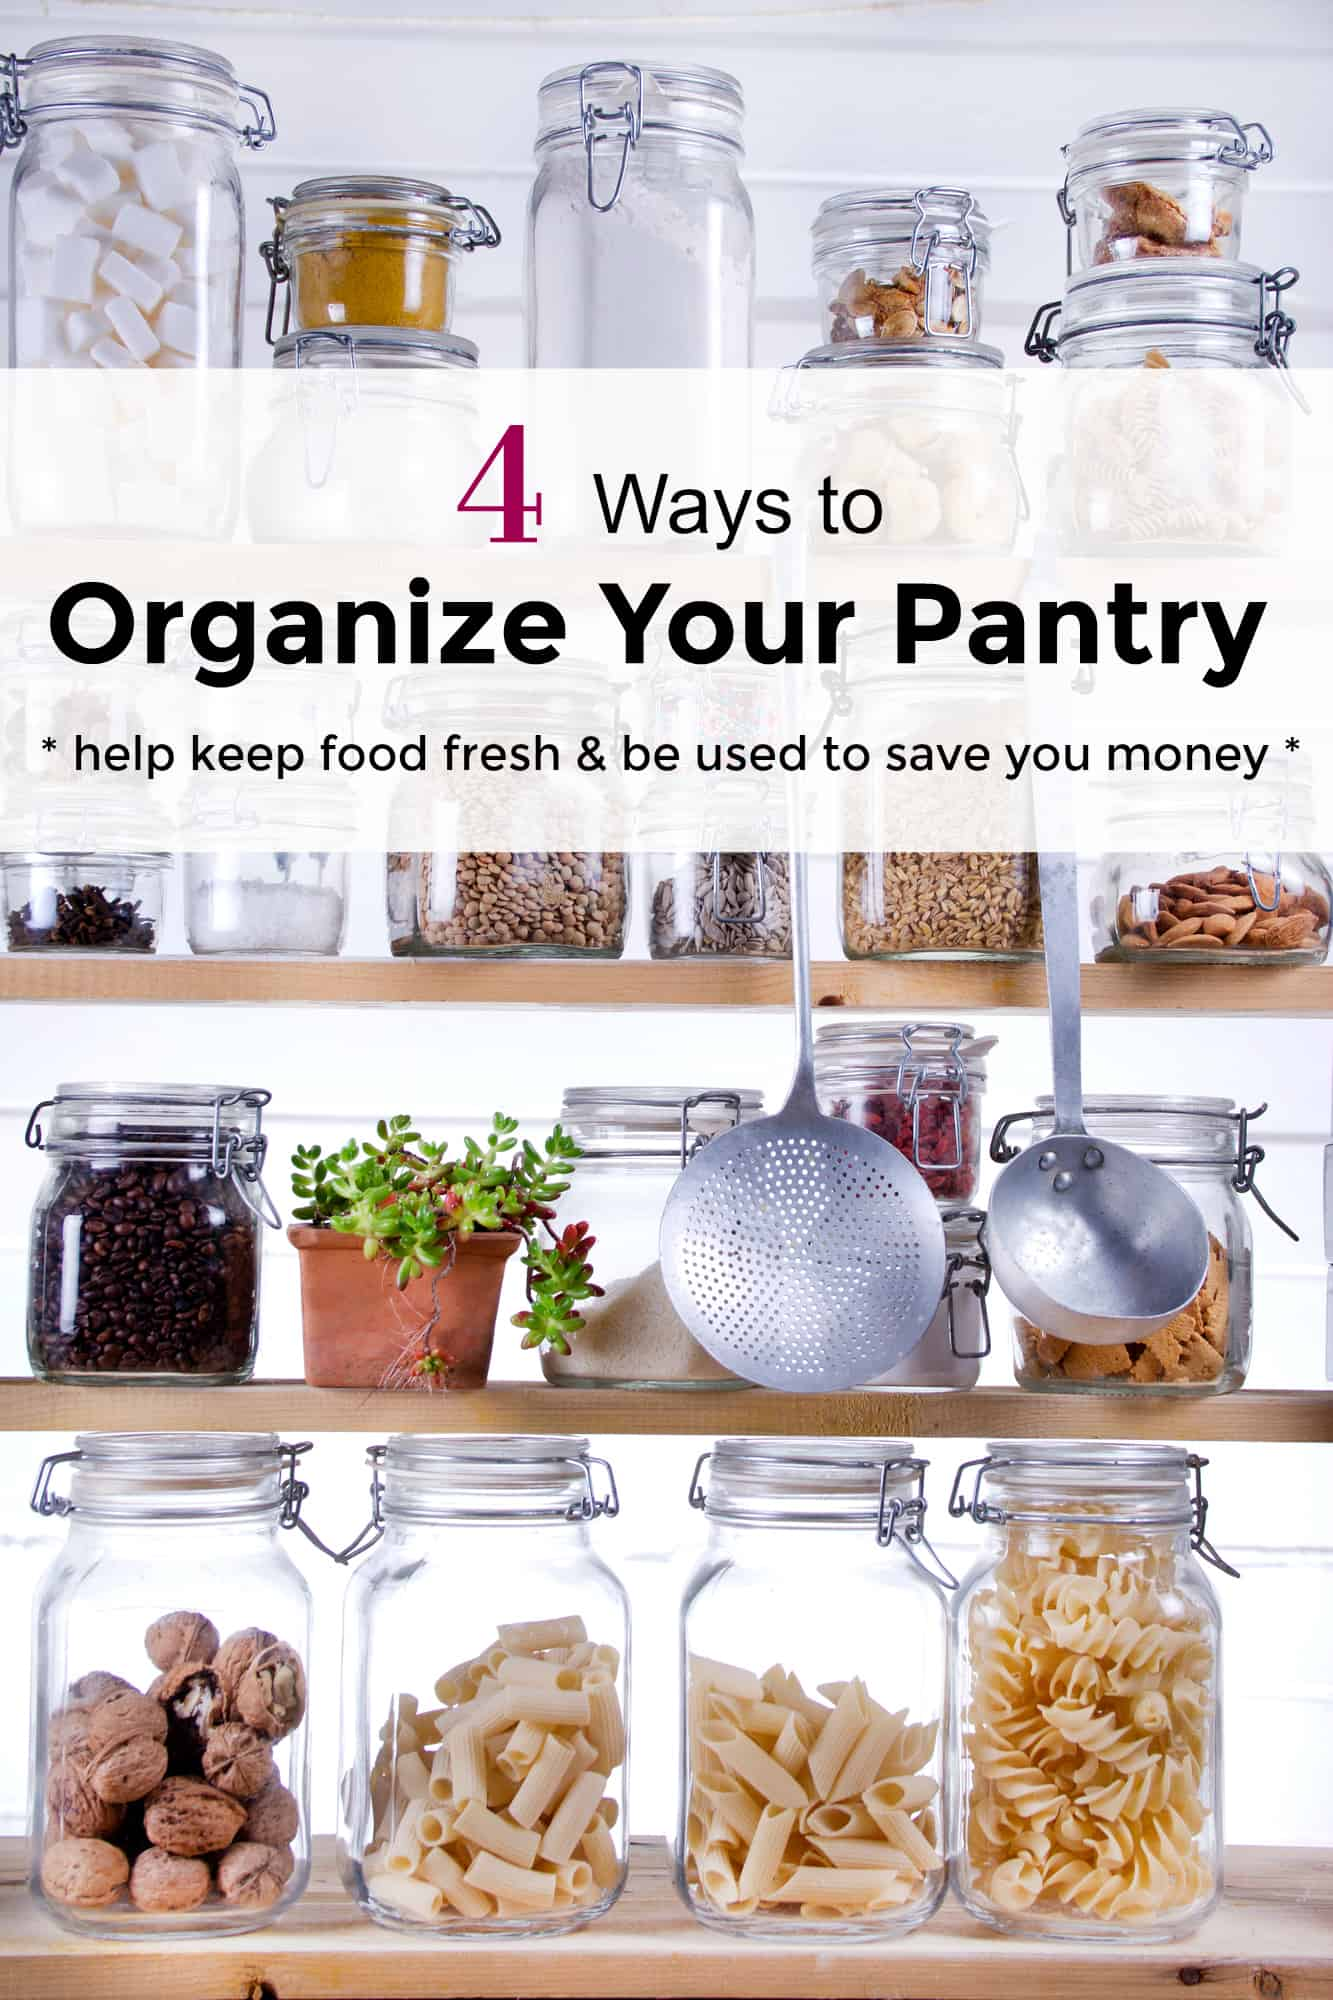 4 Ways To Organize Your Pantry